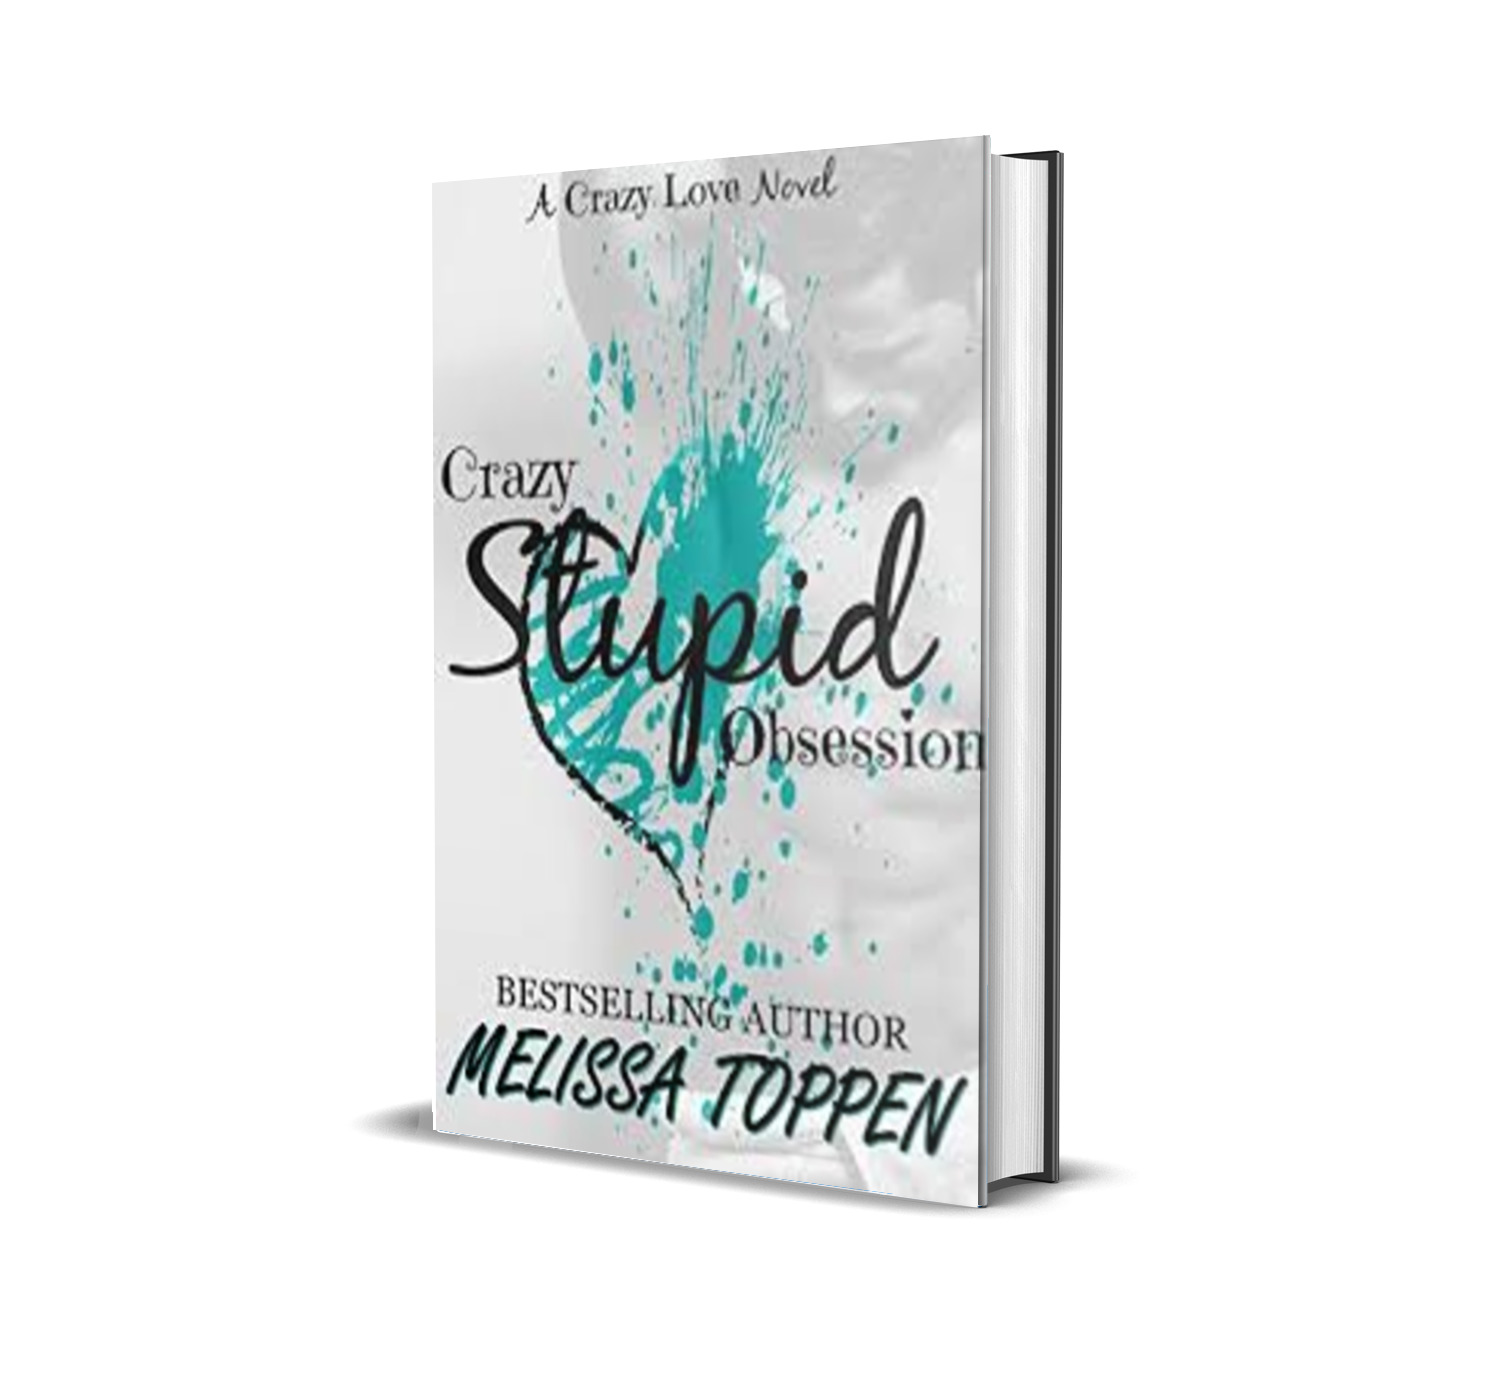 crazy-stupid-obsession-MELISSA TOPPEN